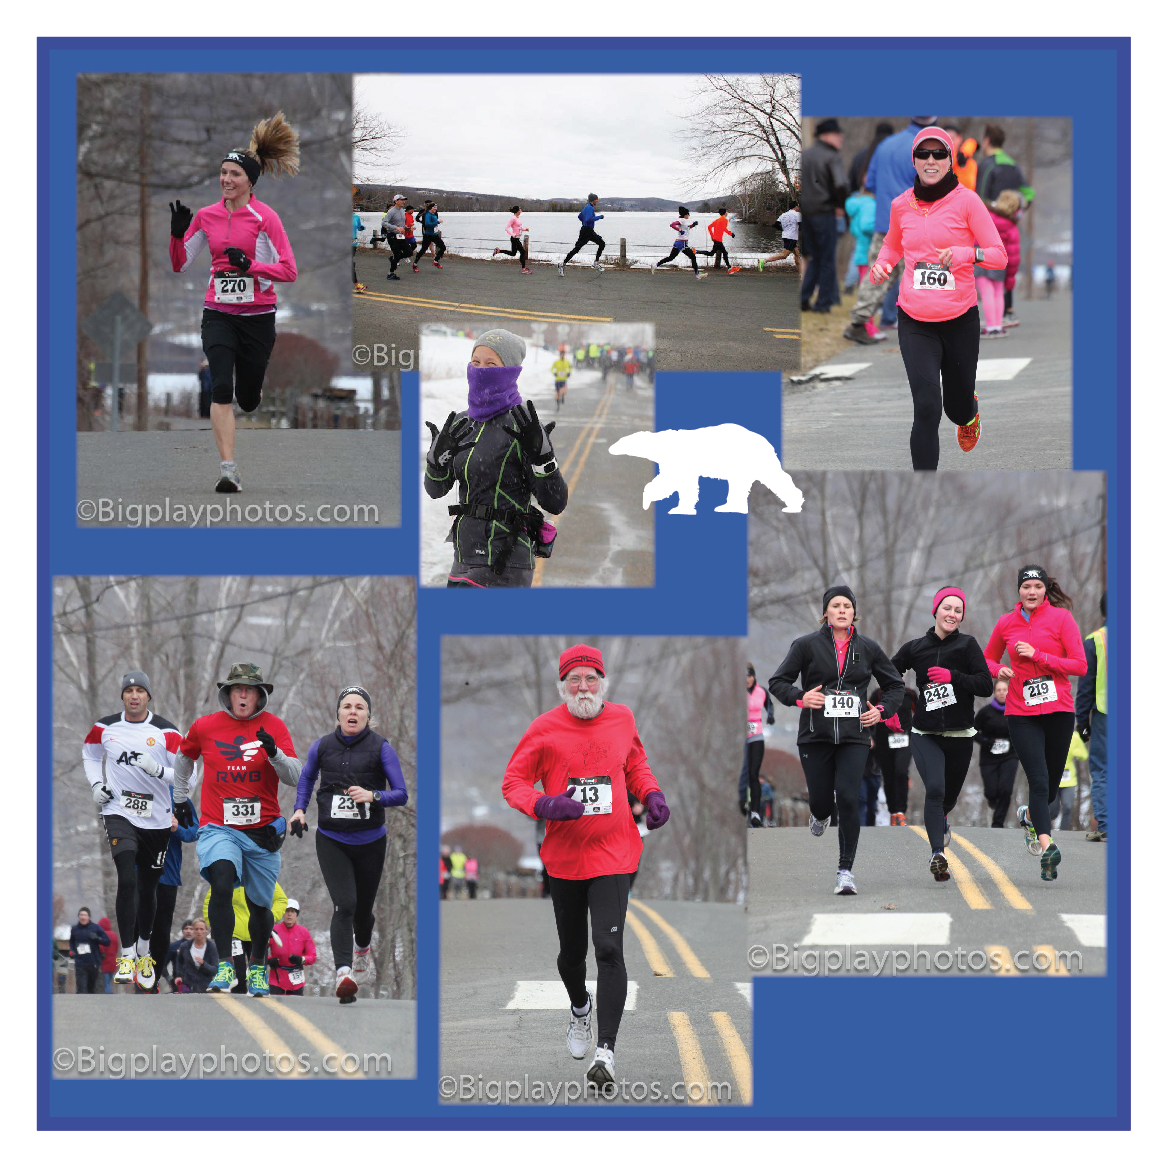 Polar Bear Runners Collage